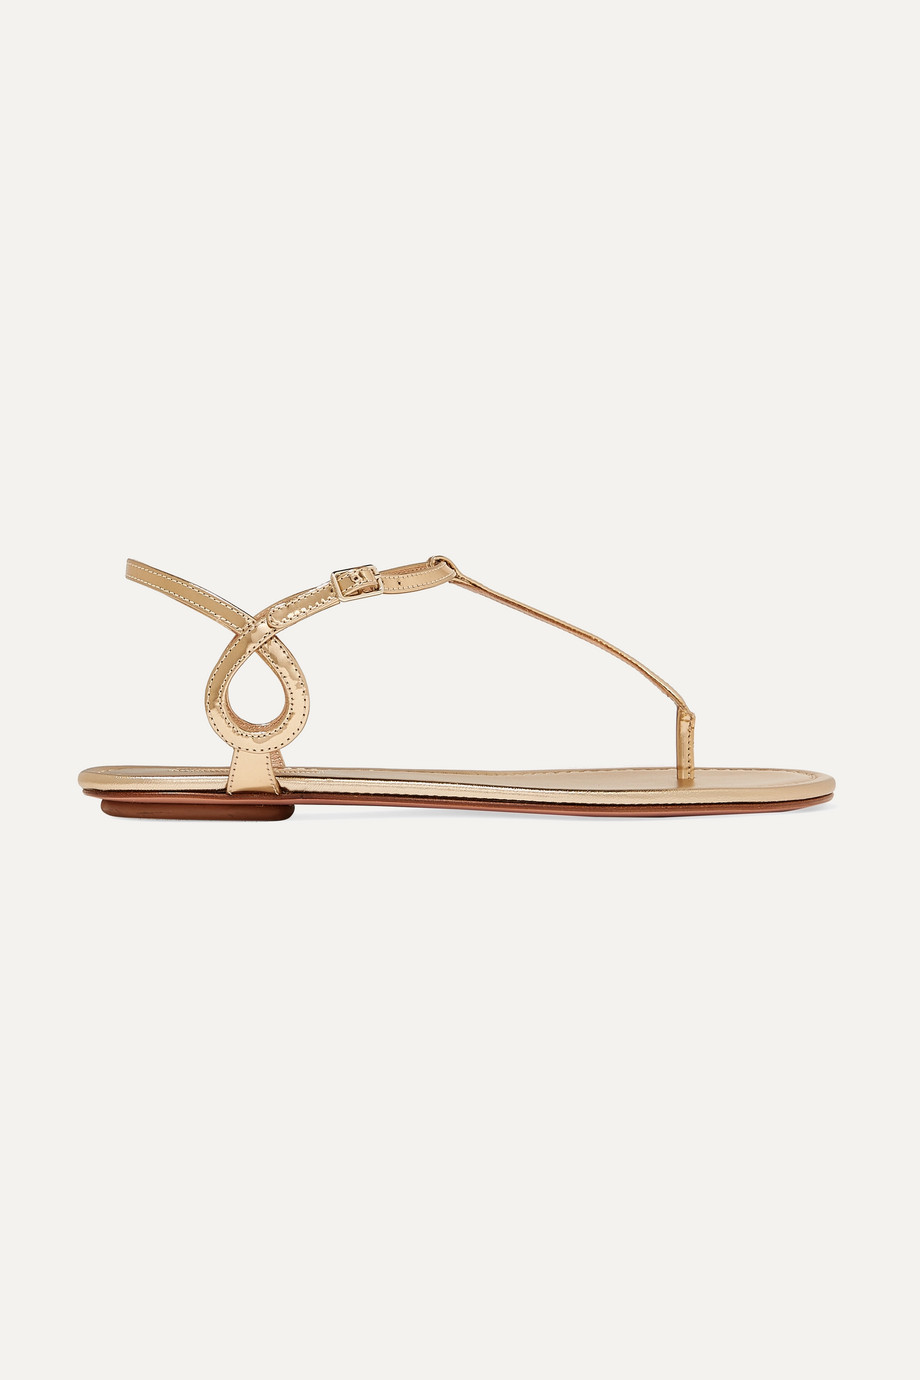 Aquazzura Almost Bare metallic leather sandals